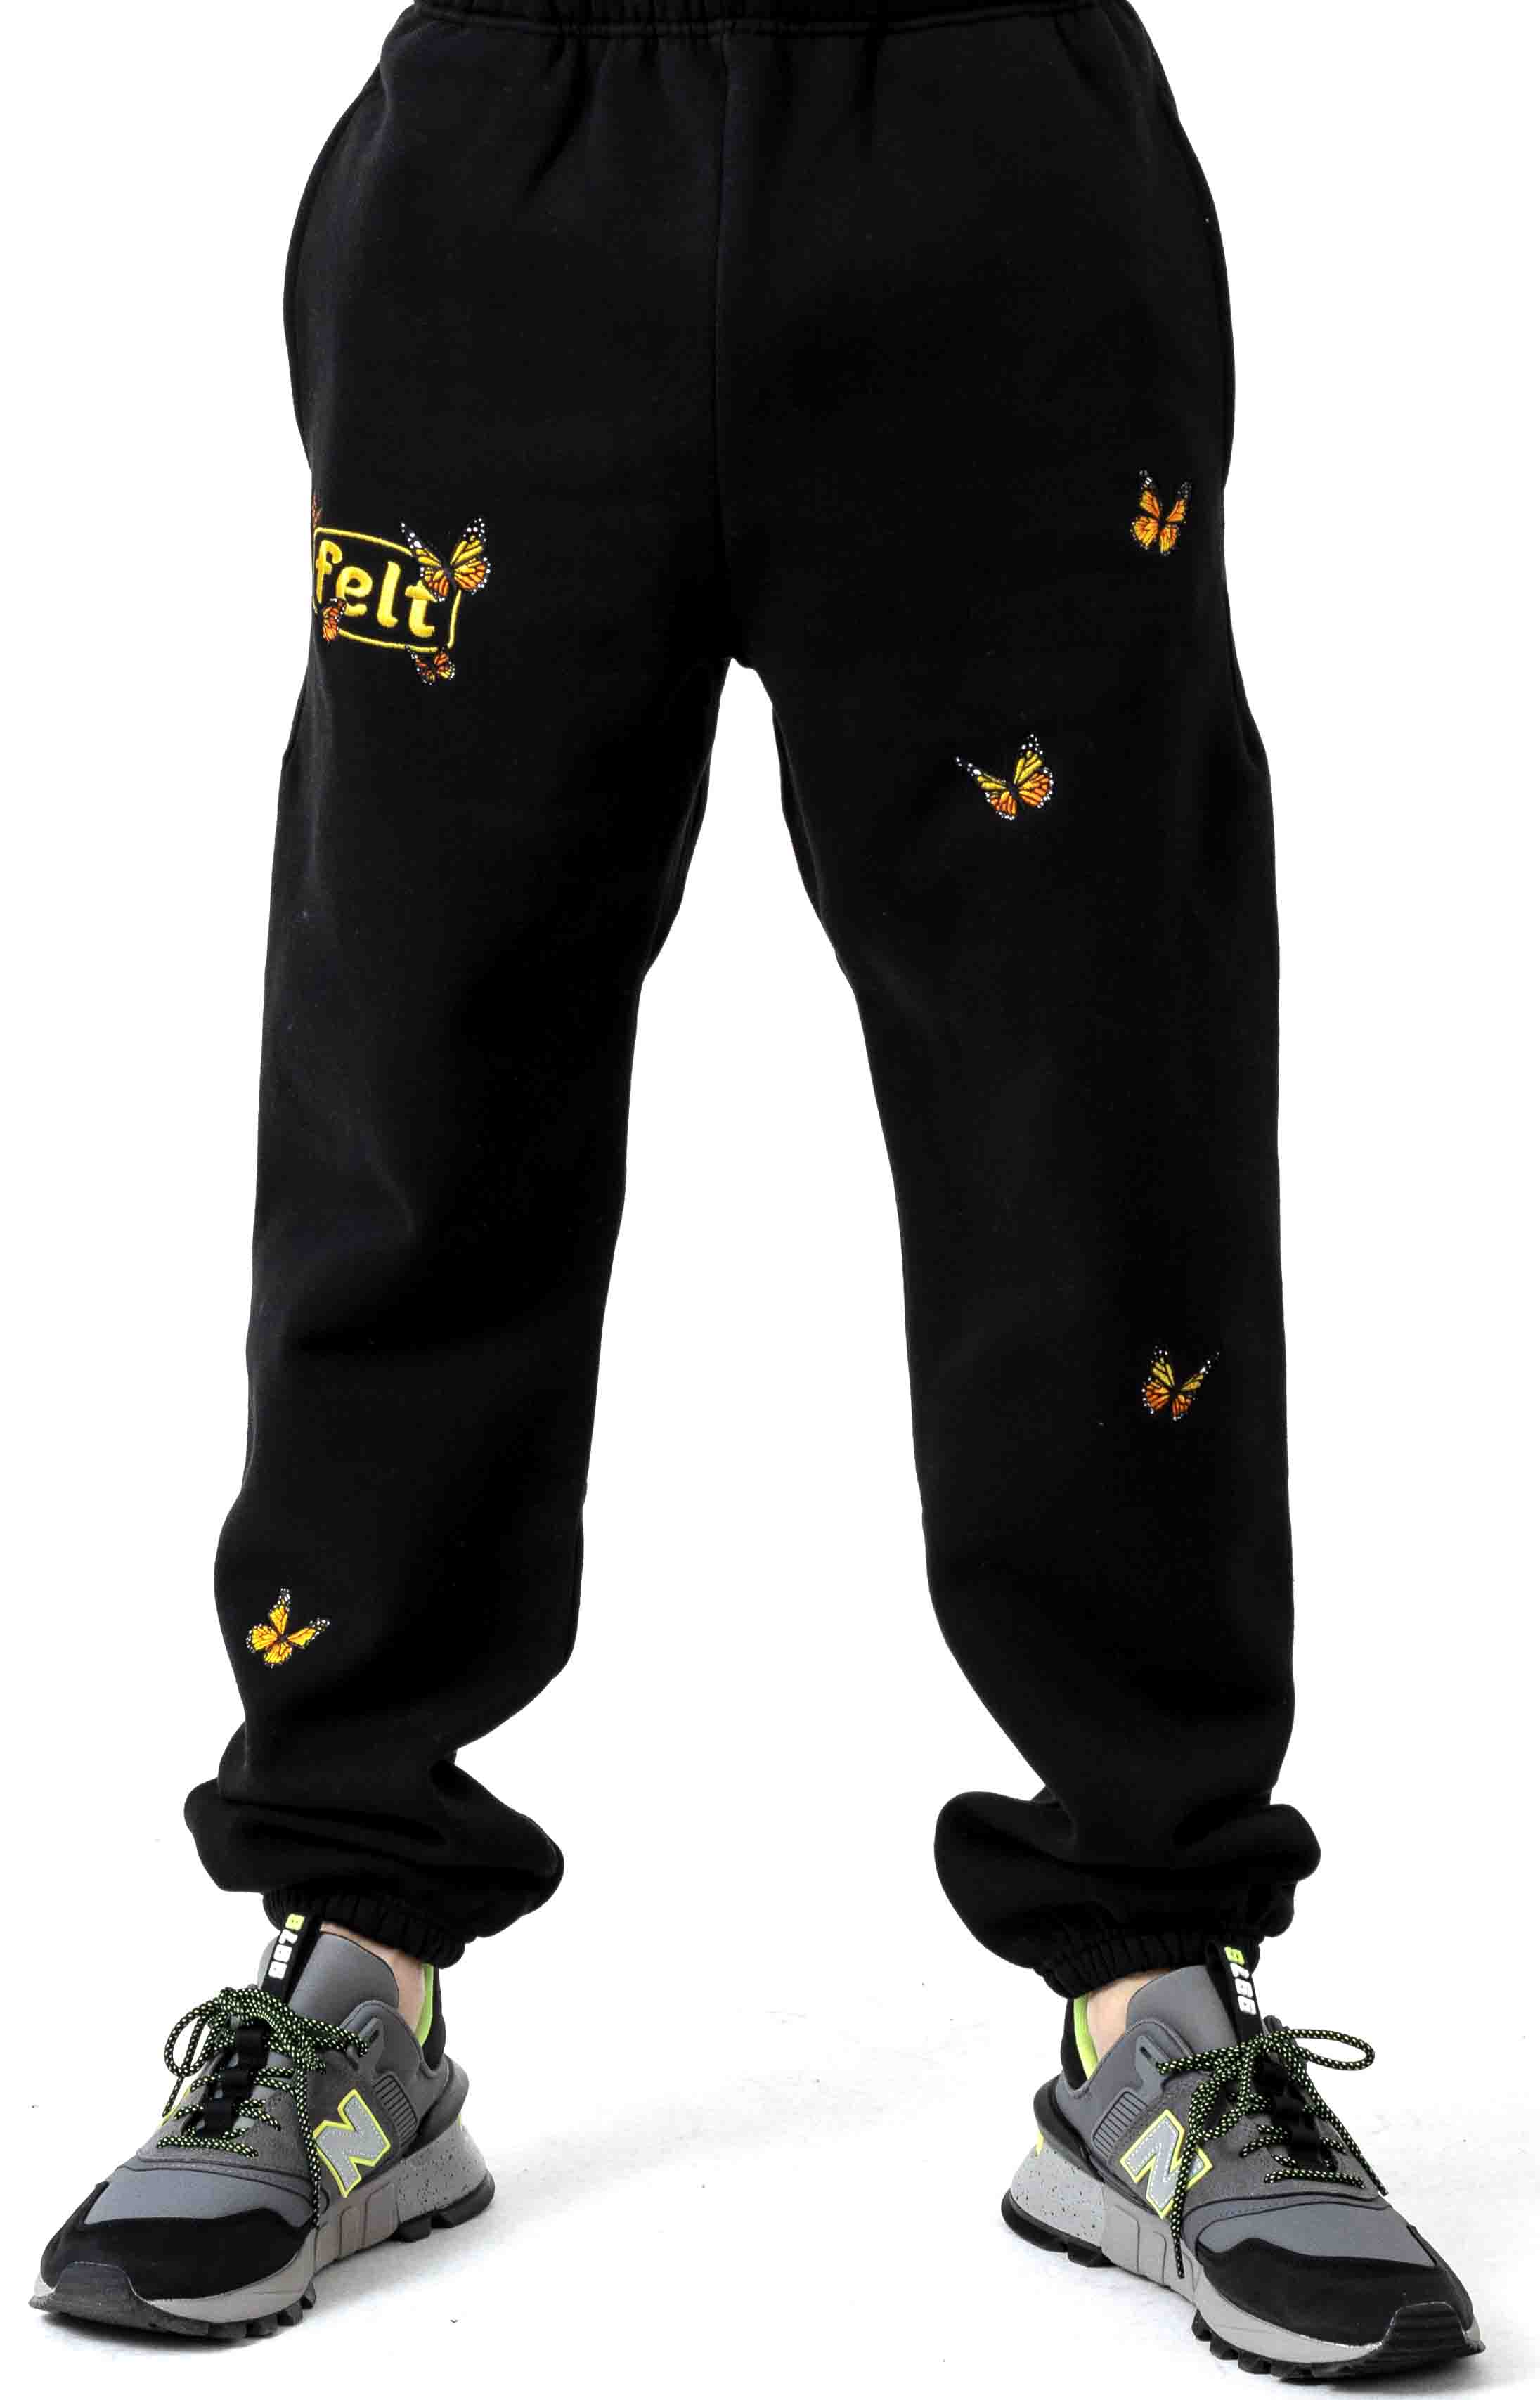 Butterfly Embroidered Sweatpants - Black 2